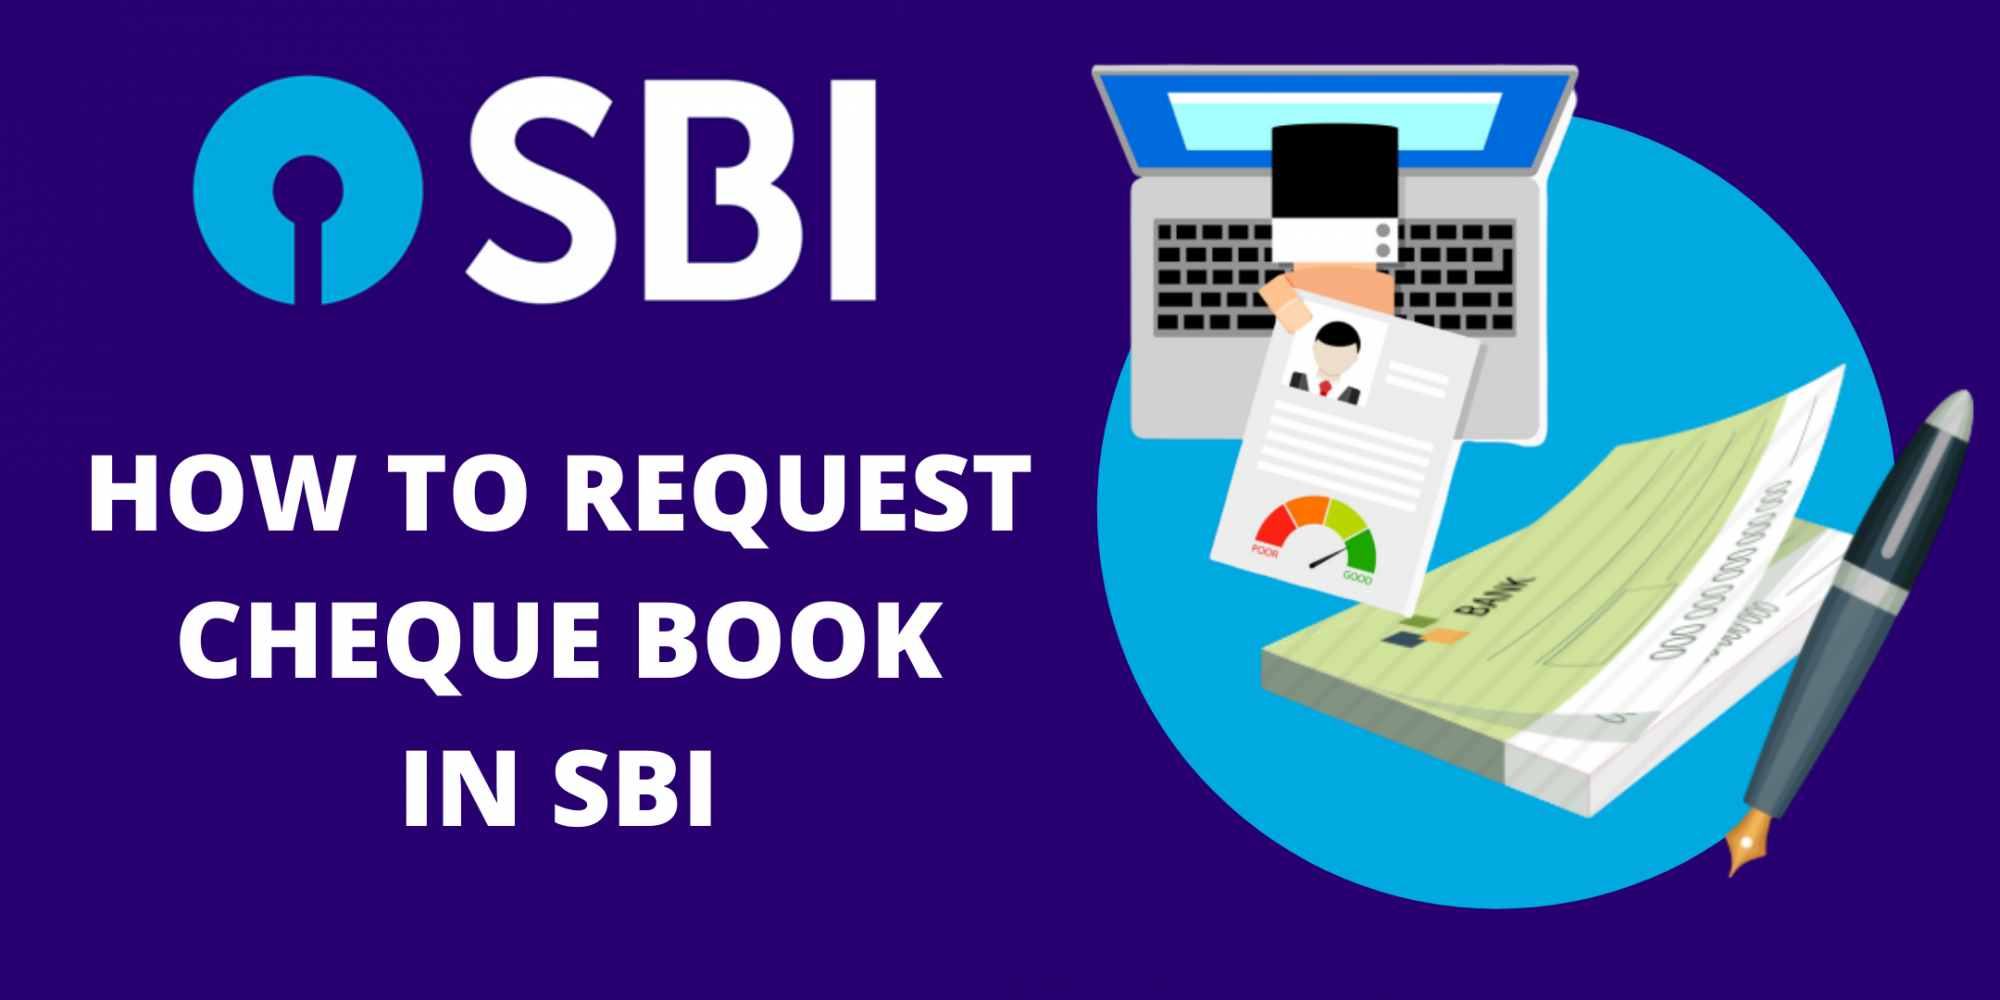 request-cheque-book-in-sbi